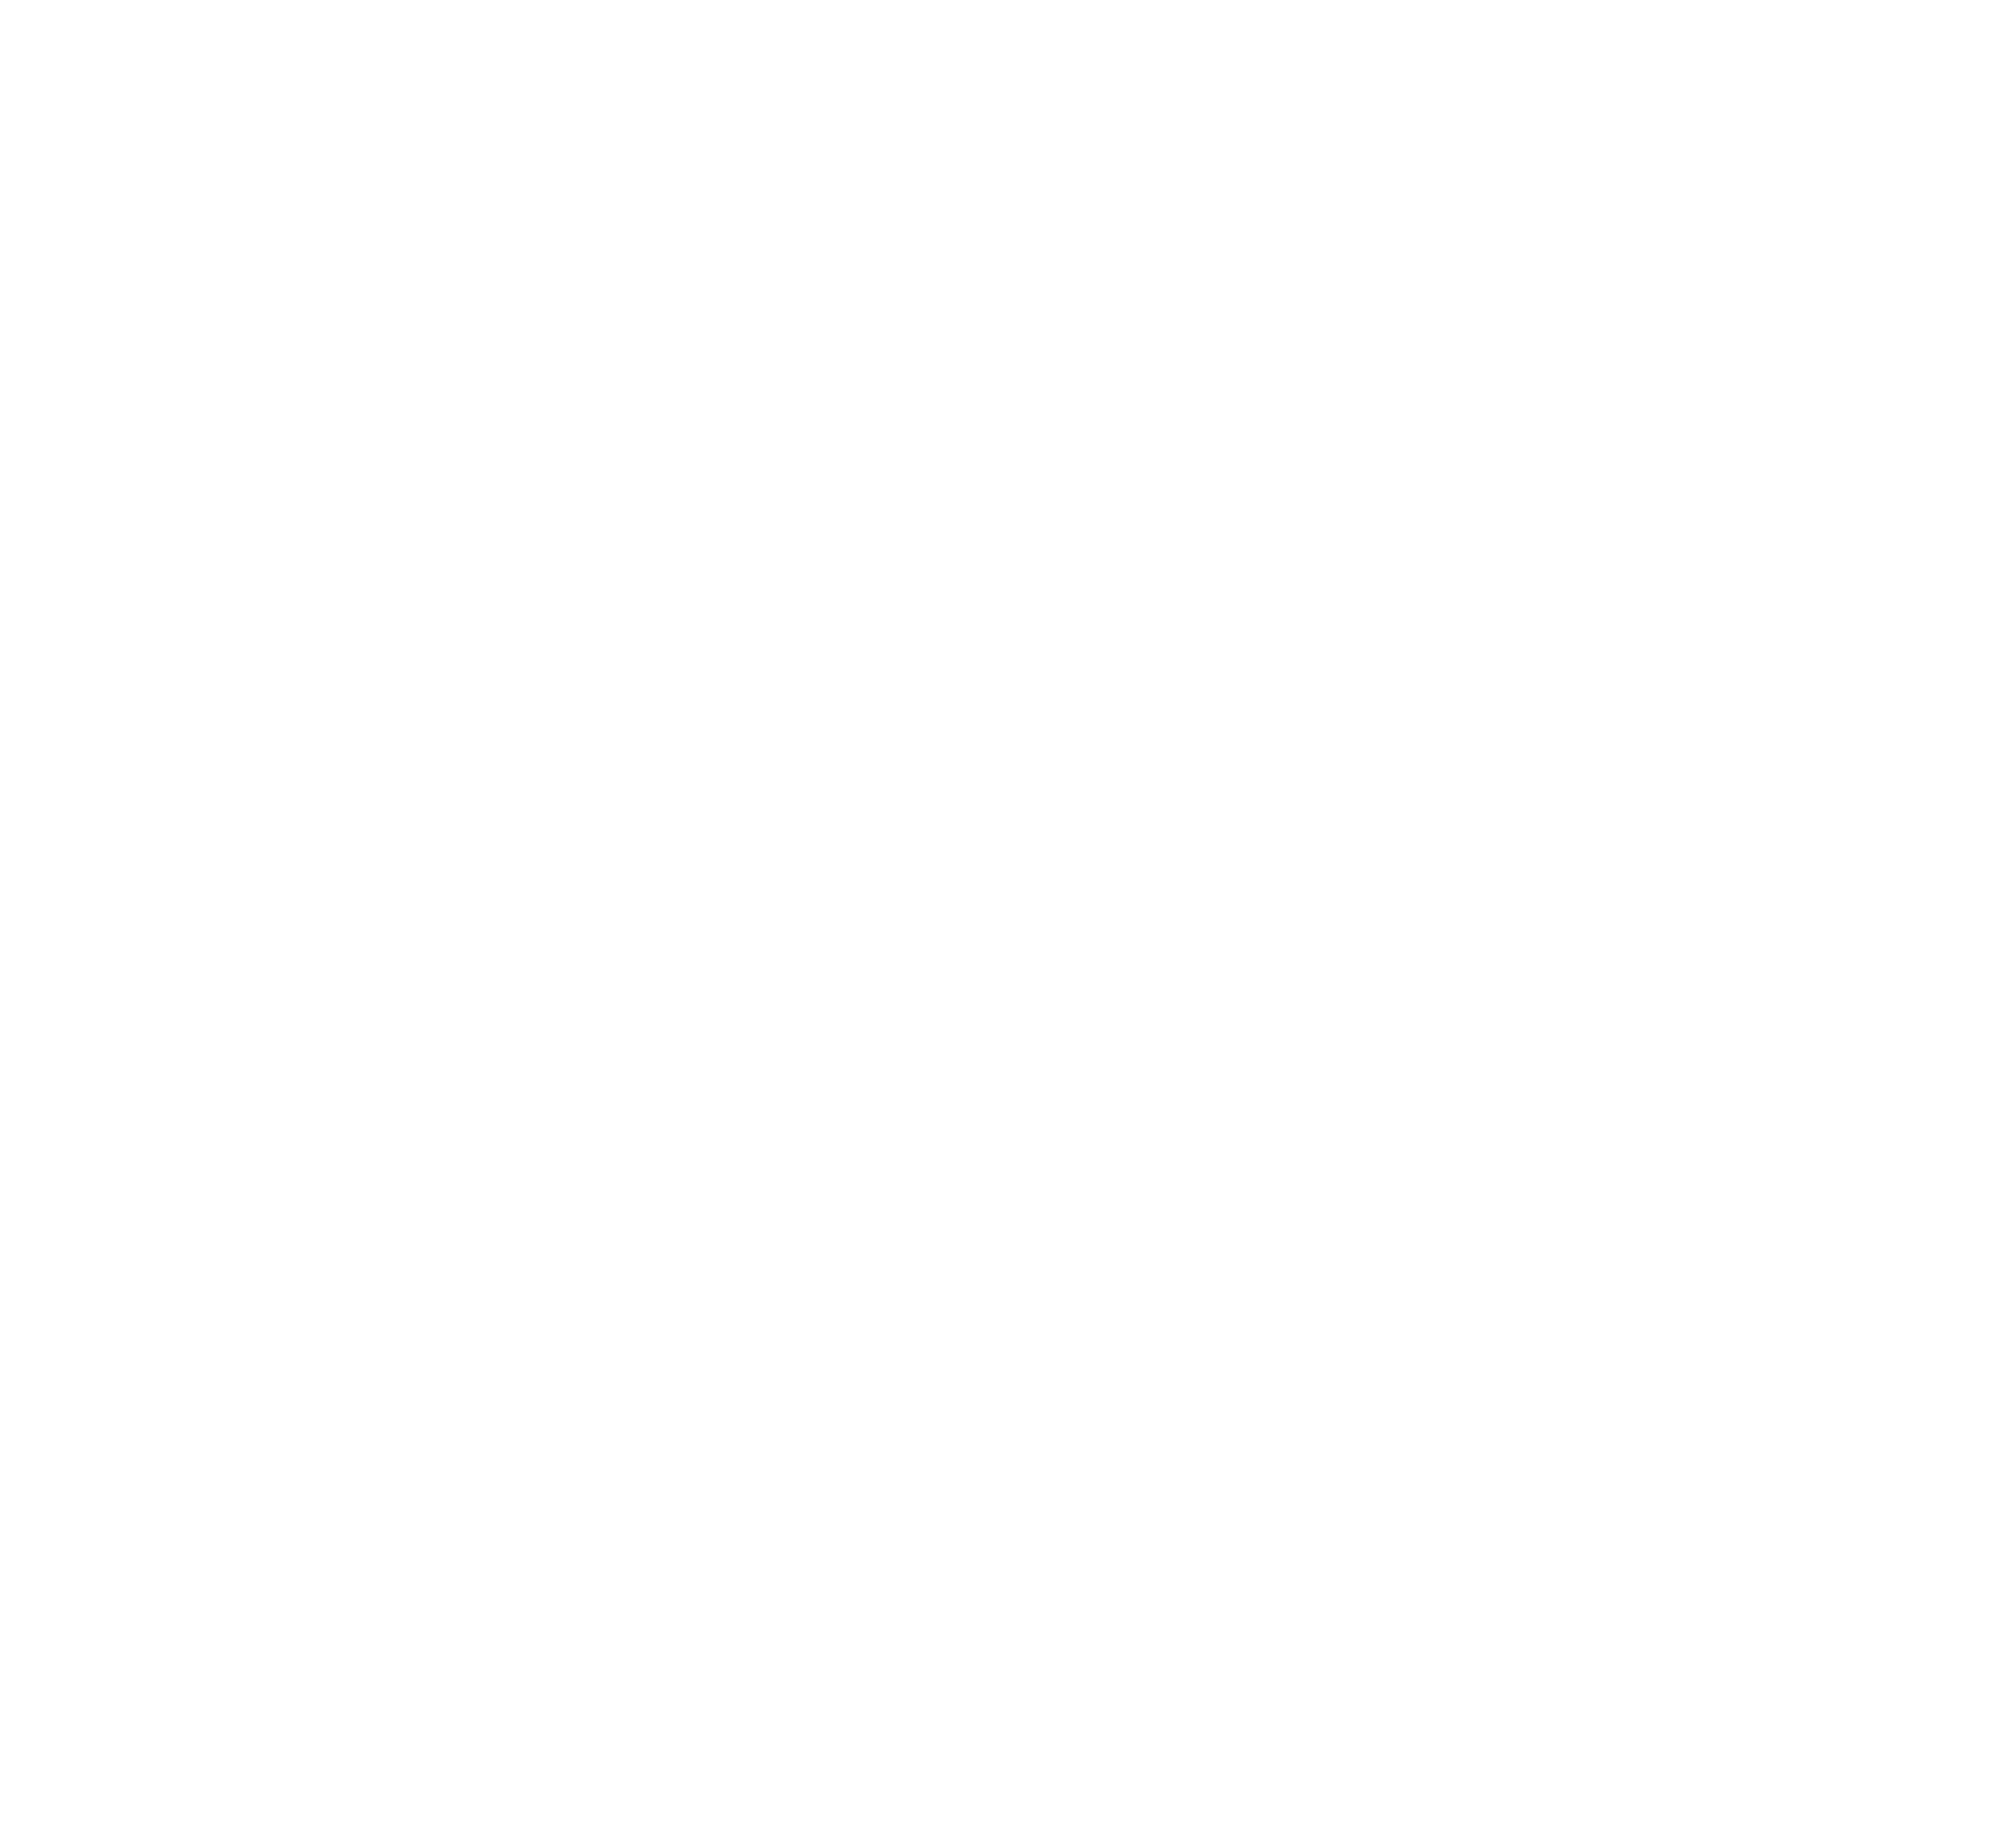 Open Agile Turkey